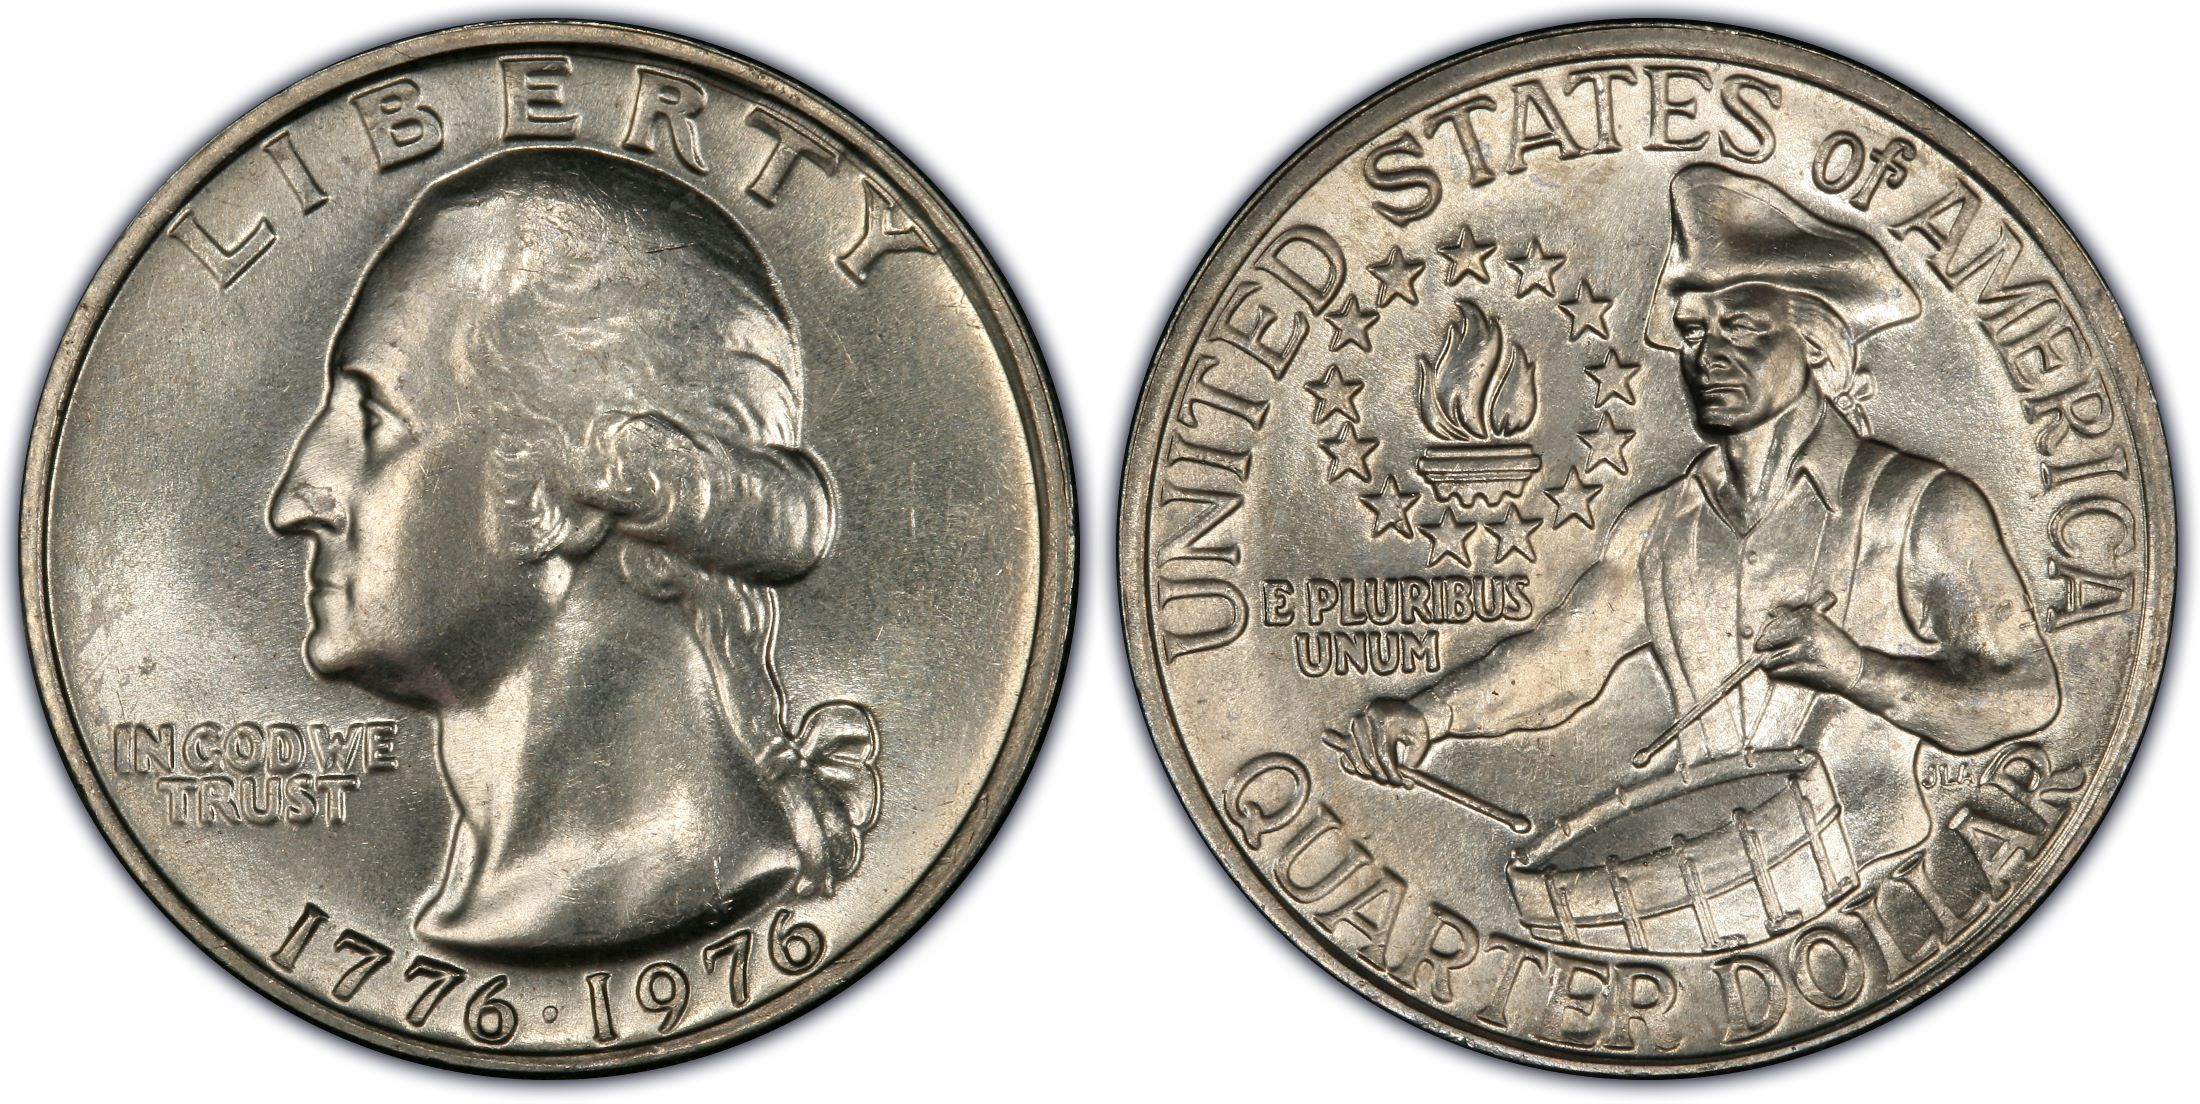 1976 25C Clad (Regular Strike) - PCGS CoinFacts